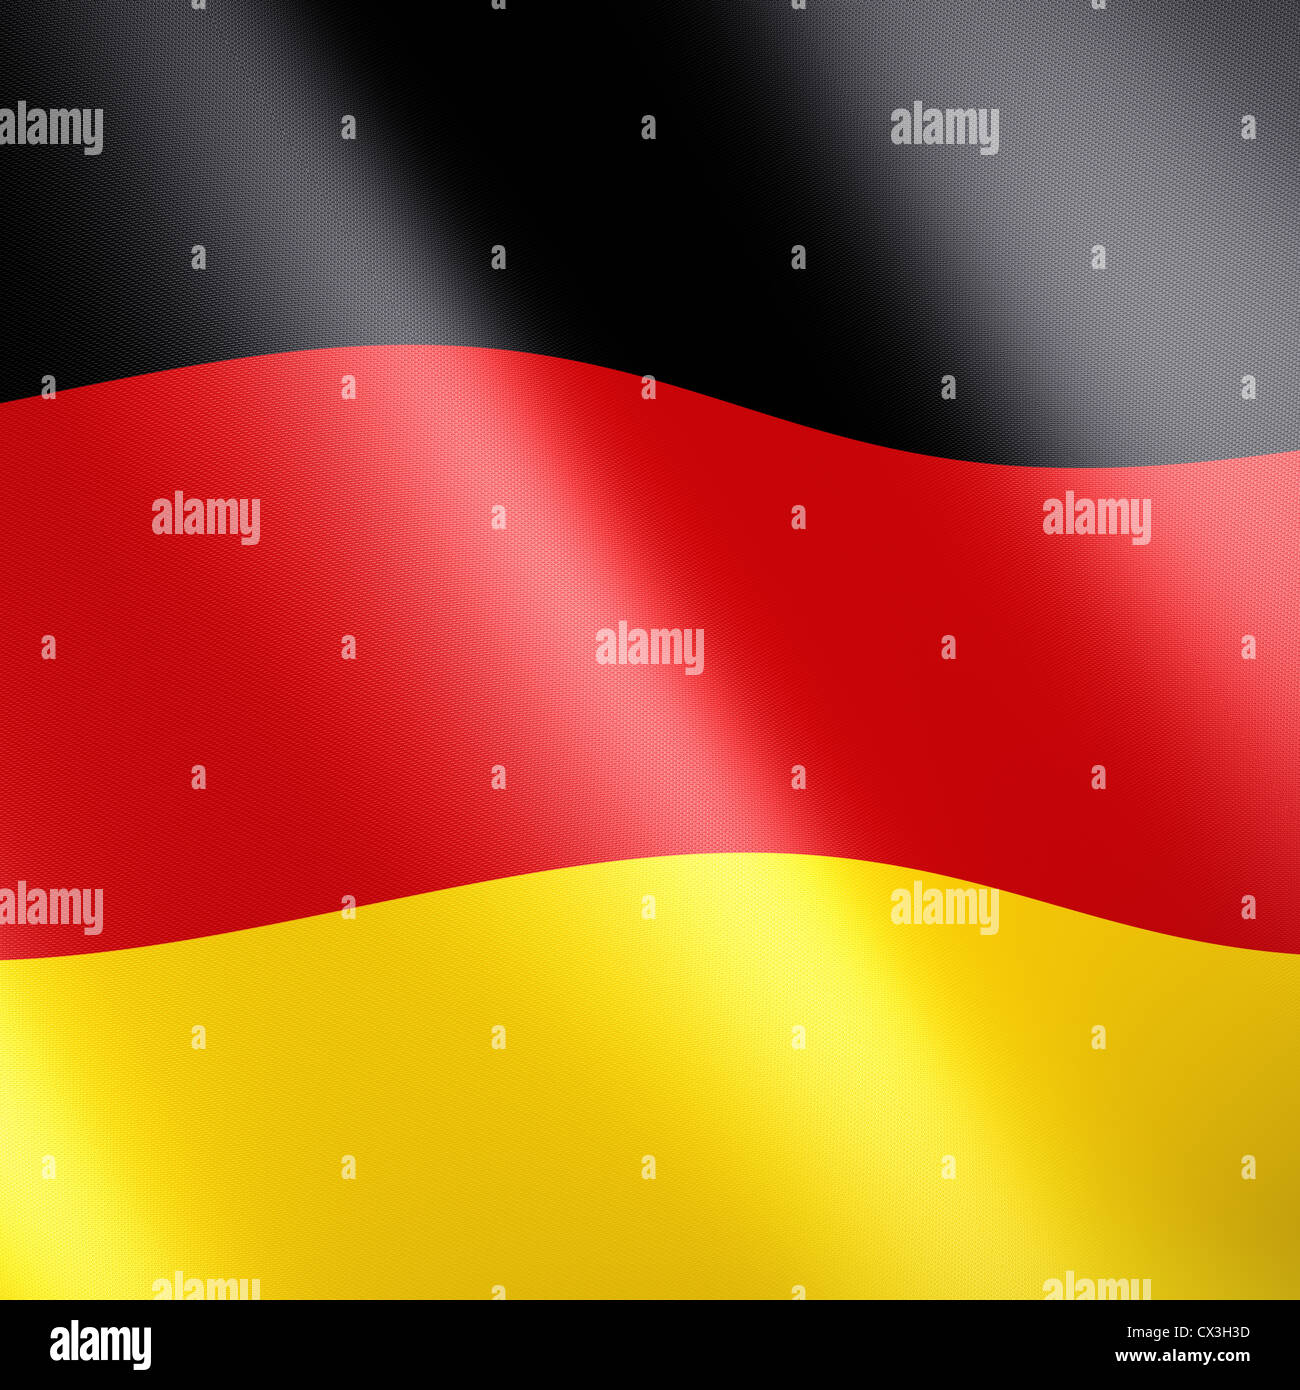 Deutsche oder Deutschland Fahne / Flagge - flag of the federal republic of germany - Stock Image